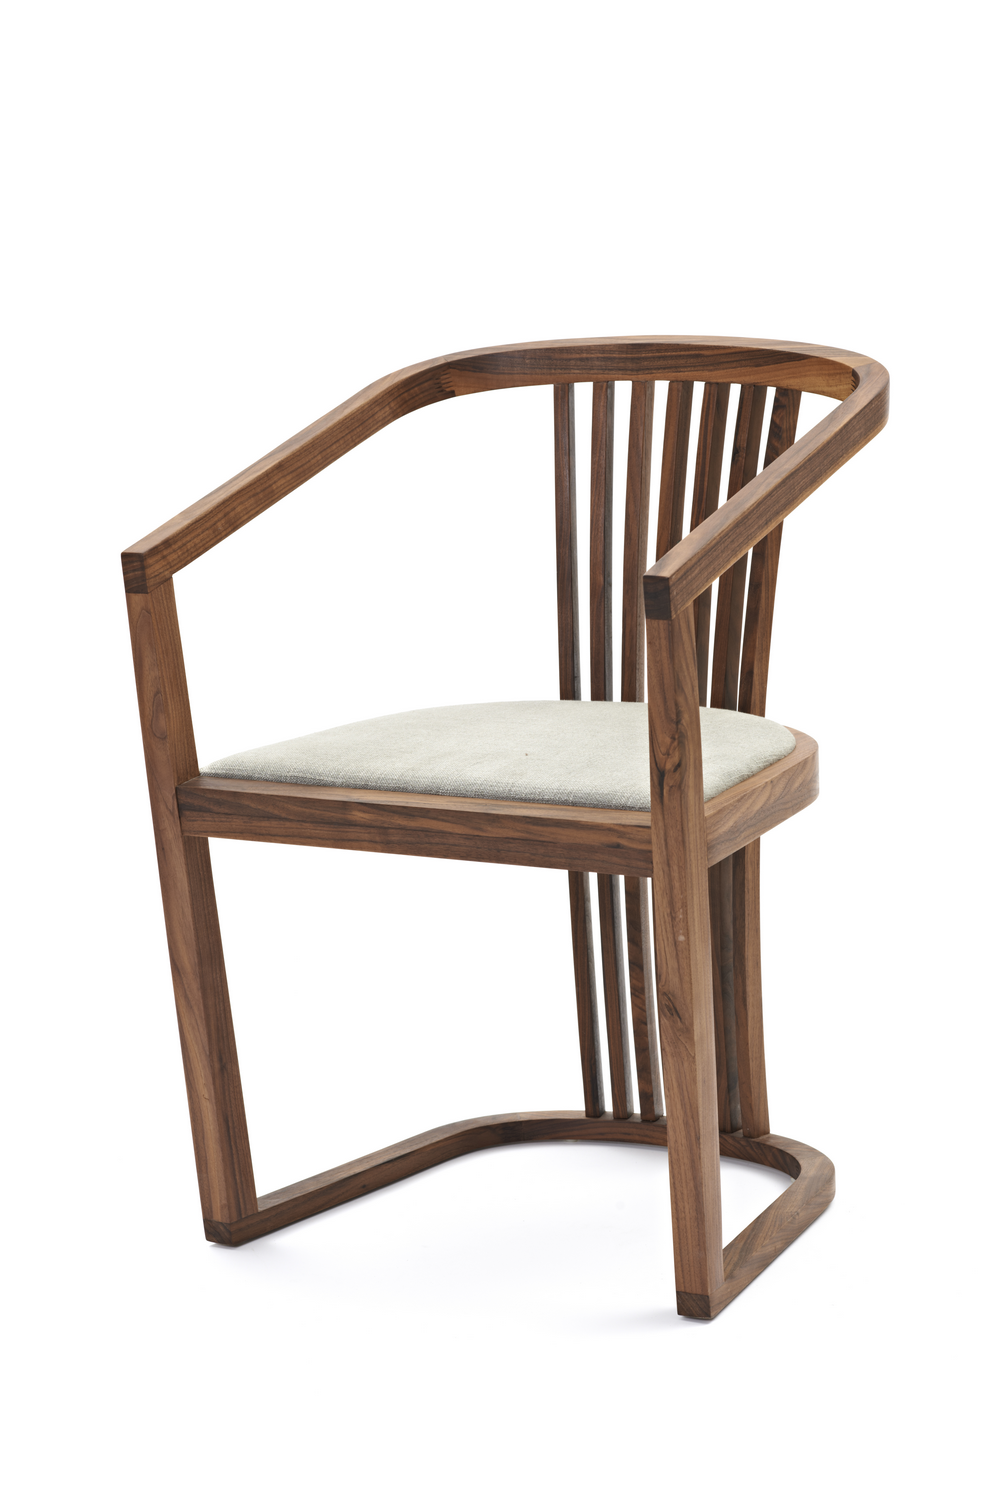 Handmade Wooden Chairs Chair Covers Of Cincinnati Seatings Pinterest Furniture And